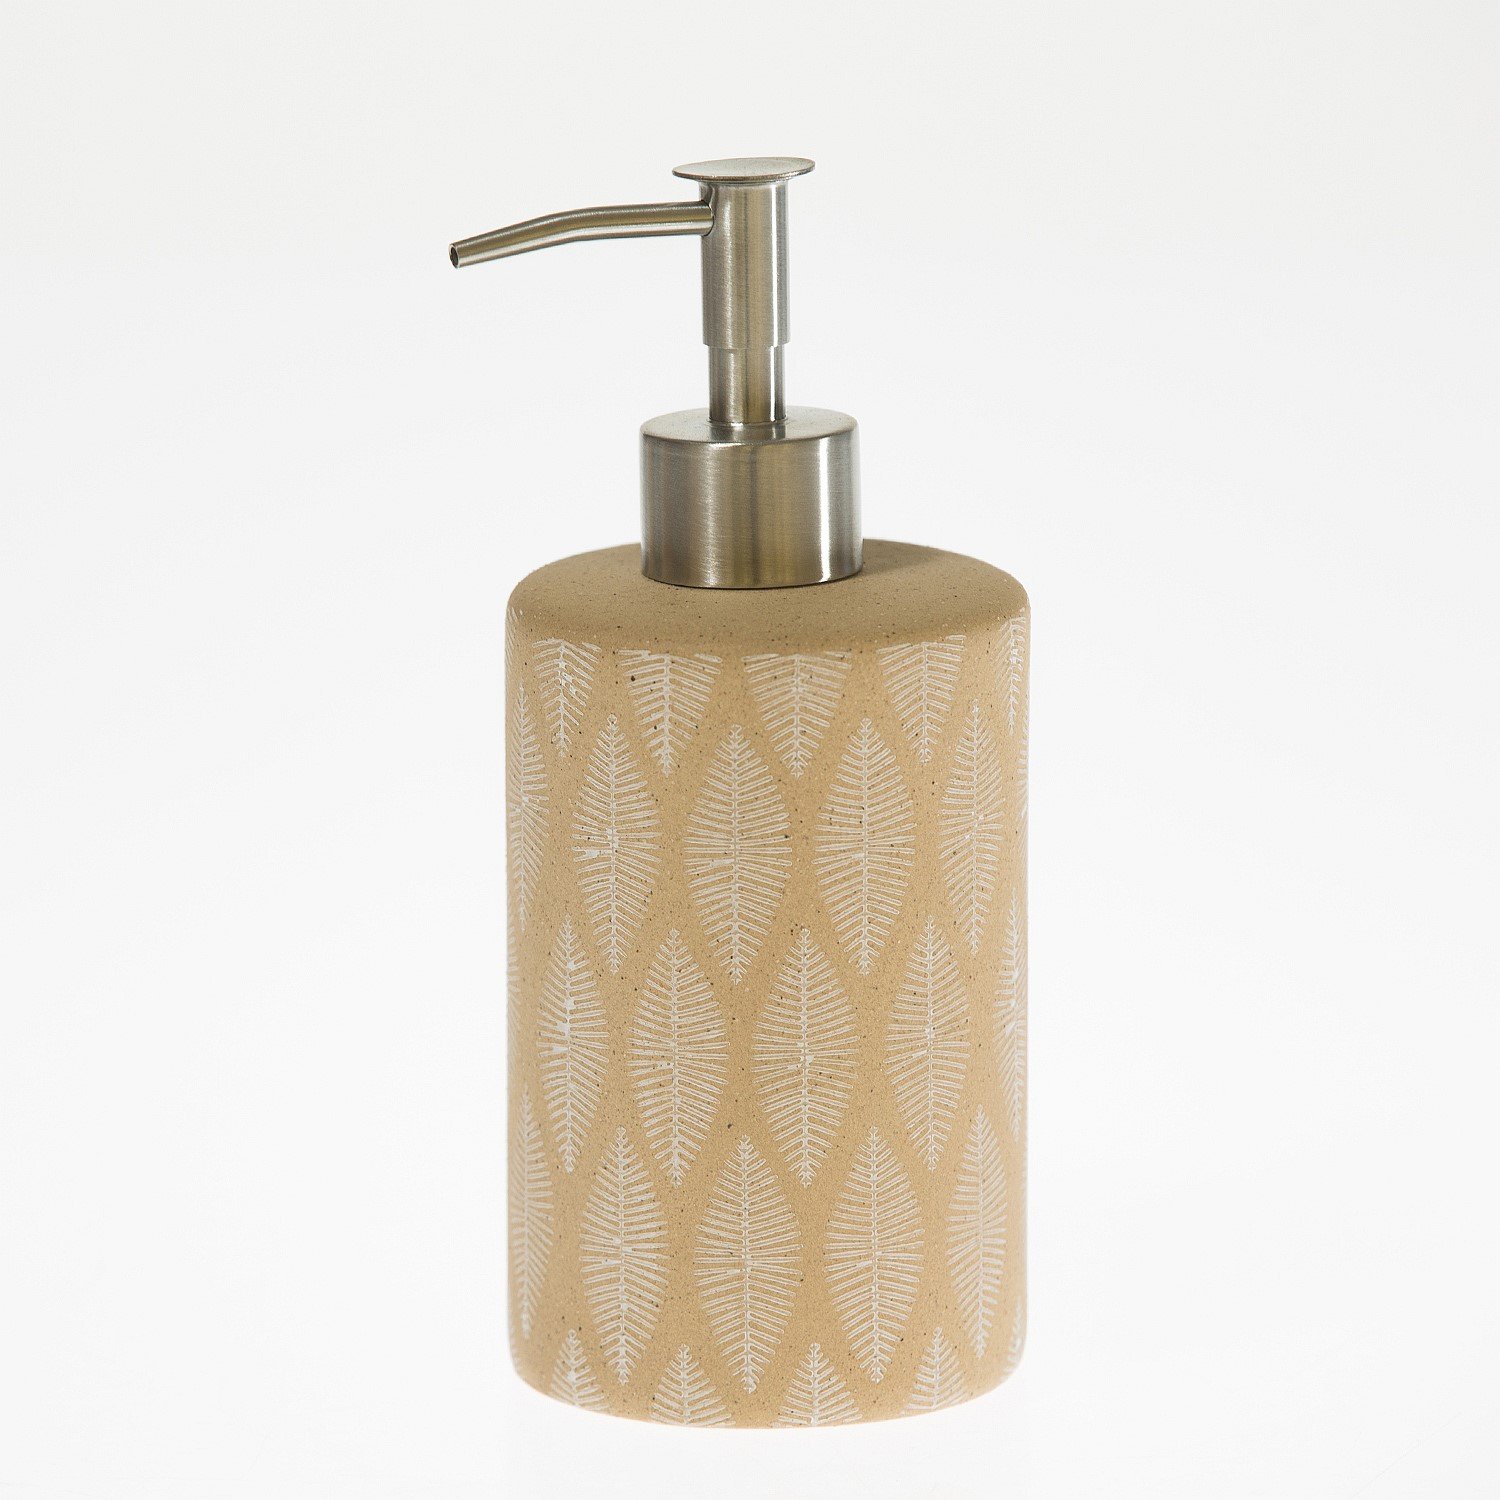 Bed Bath And Beyond Credit Card Login Bathroom Accessories Home Co Adison Soap Dispenser